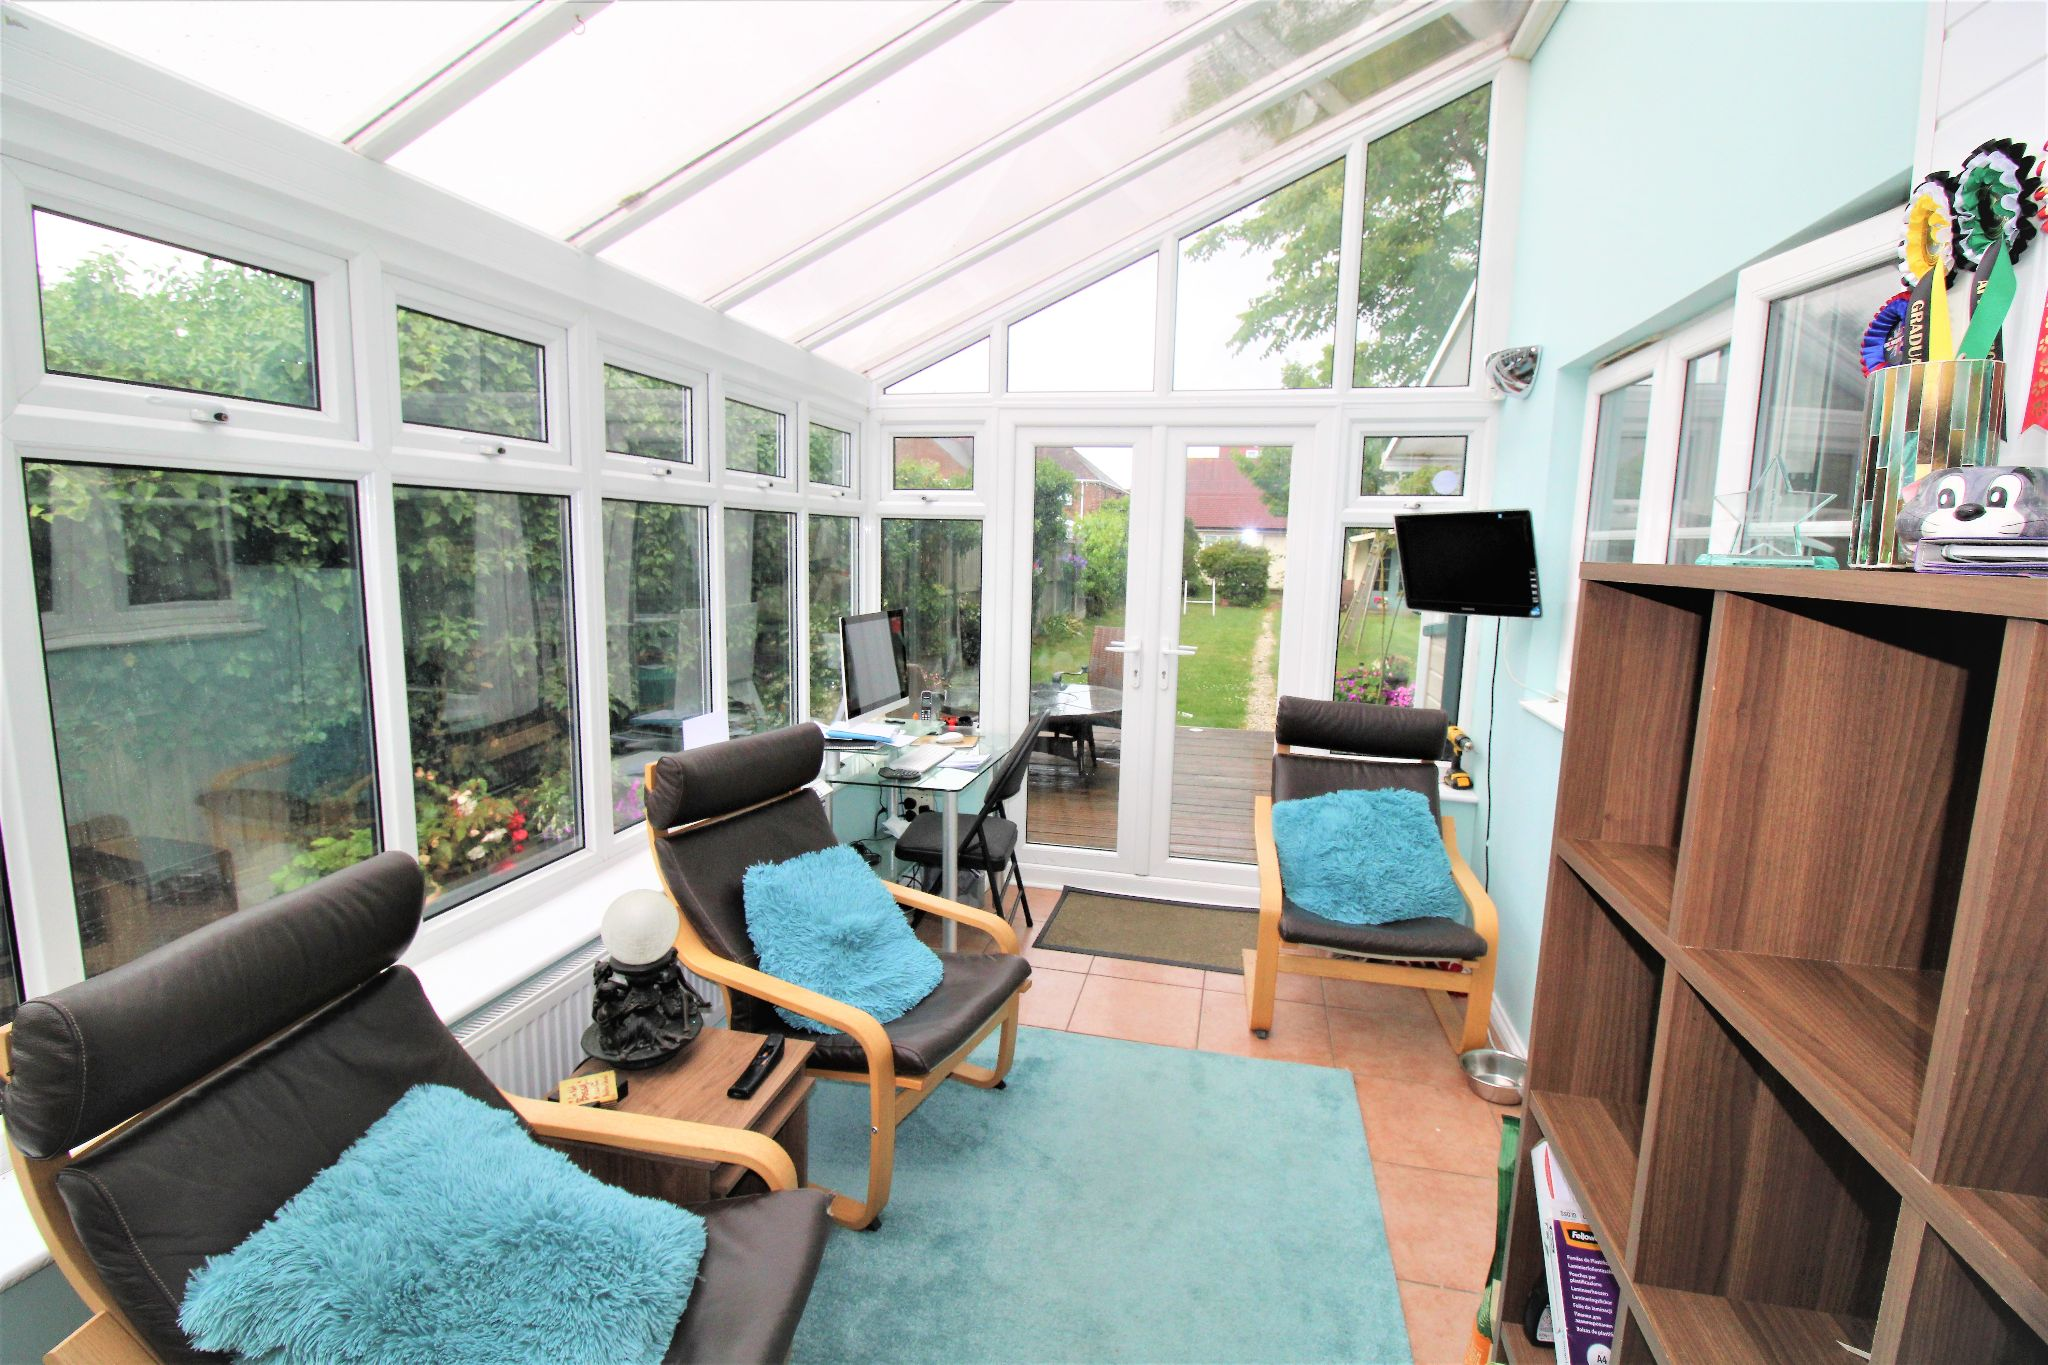 5 Bedroom Detached House For Sale - Conservatory